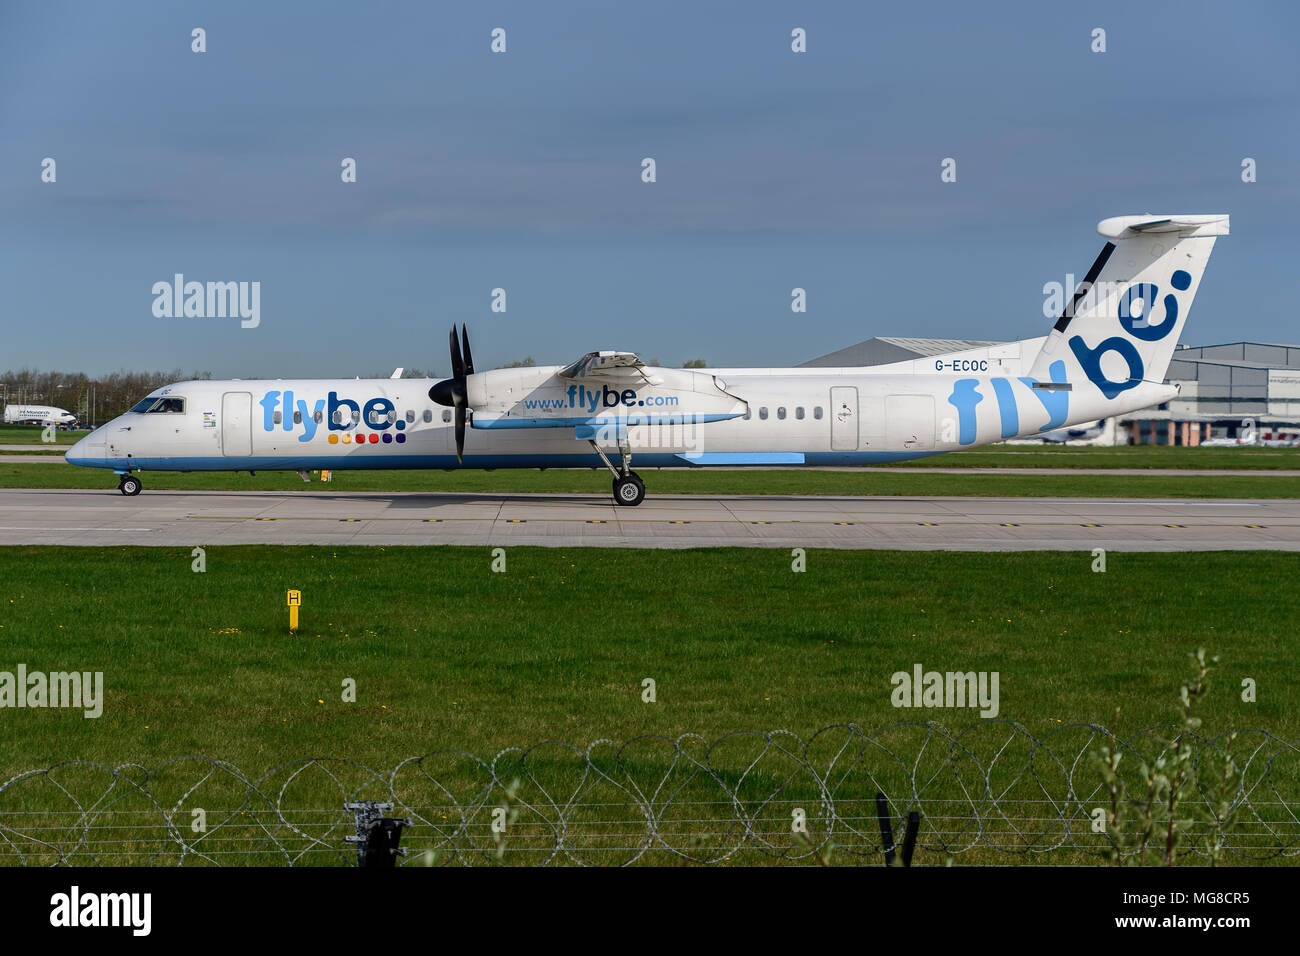 MANCHESTER, UNITED KINGDOM - APRIL 21st, 2018: Flybe Embraer ready to depart at Manchester Airport - Stock Image